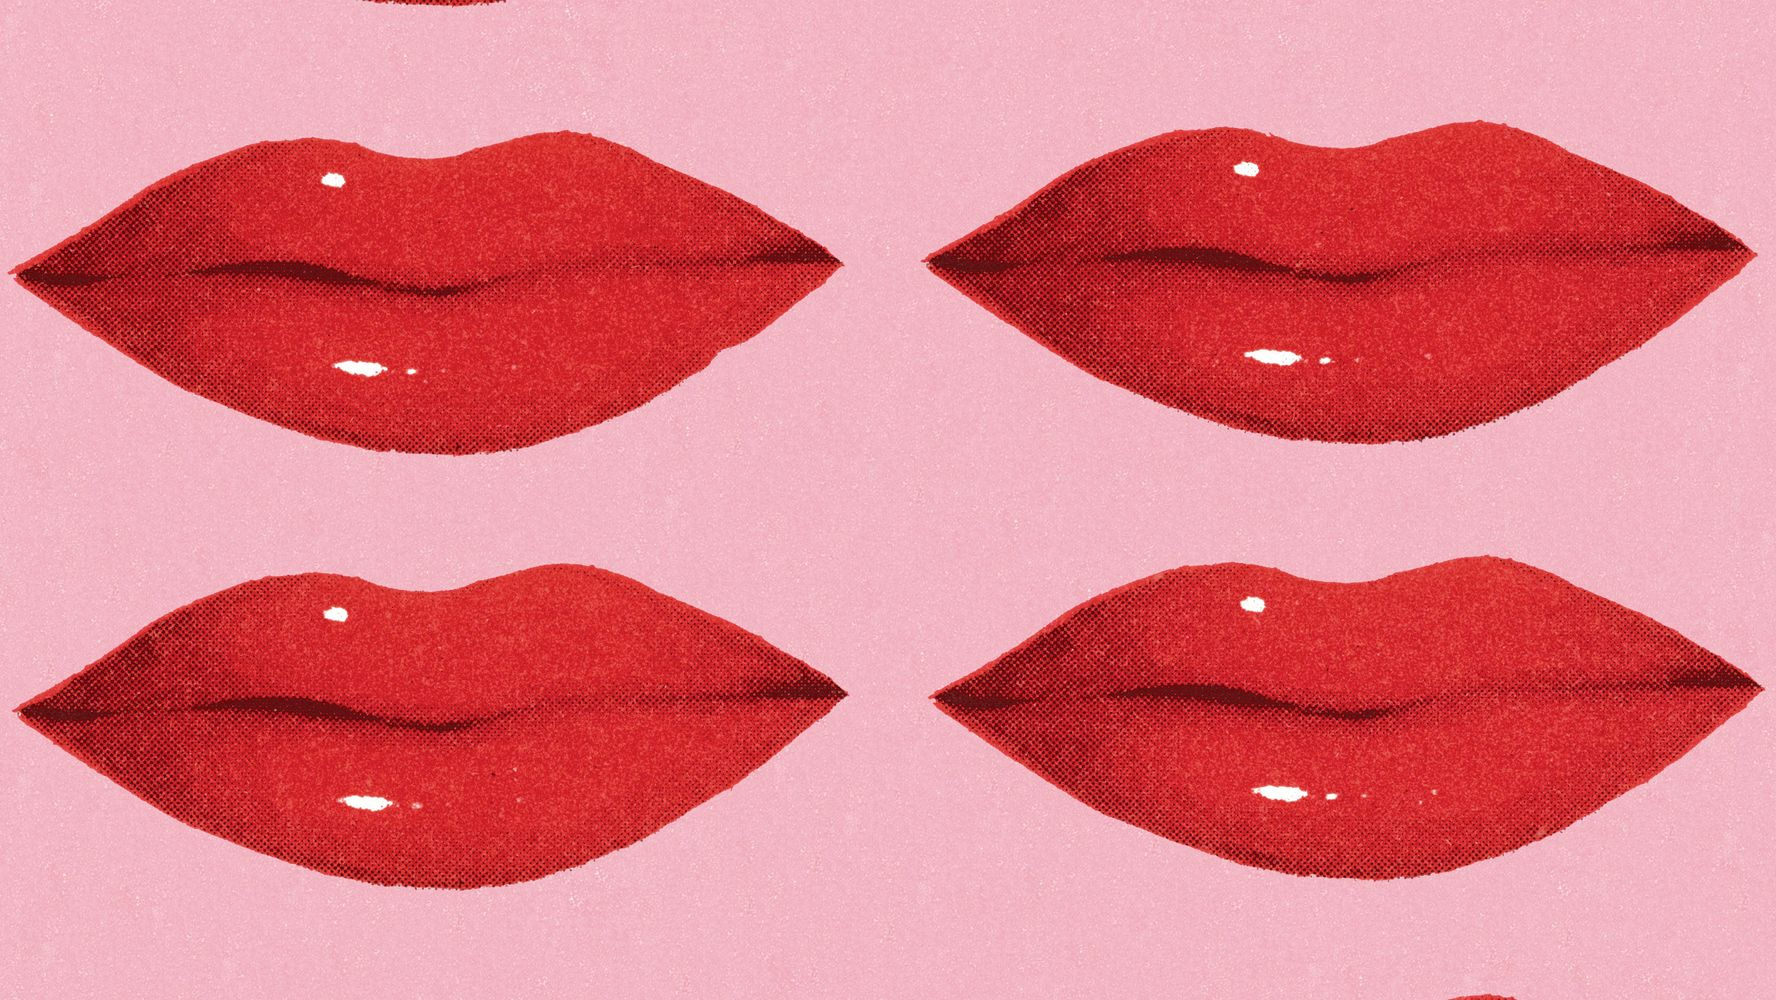 Lip Thread Lifts: What To Know About This Lip-Enhancing